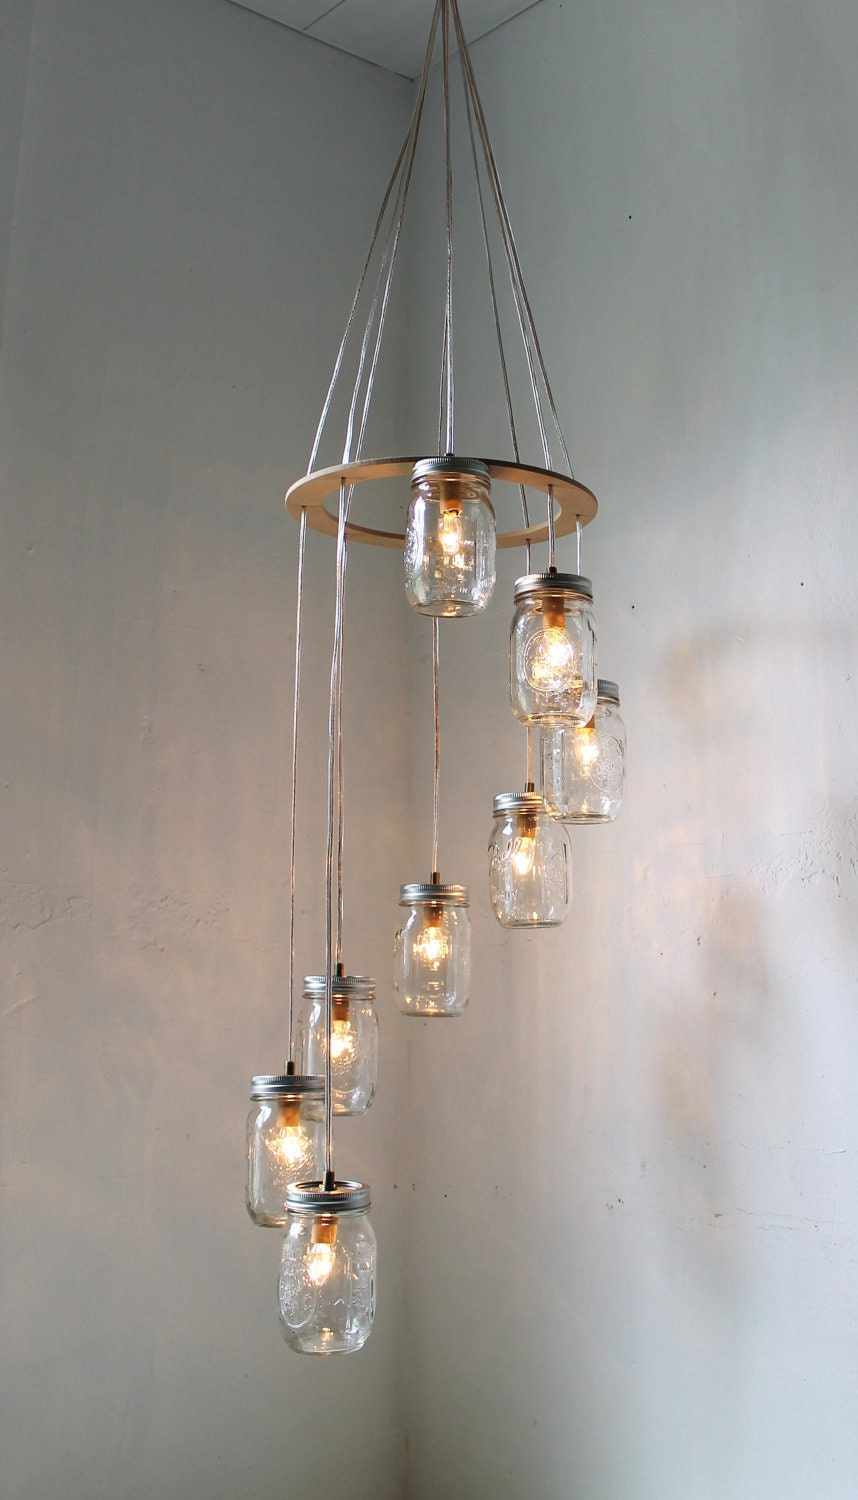 Spiral mason jar chandelier rustic hanging pendant lighting zoom arubaitofo Gallery